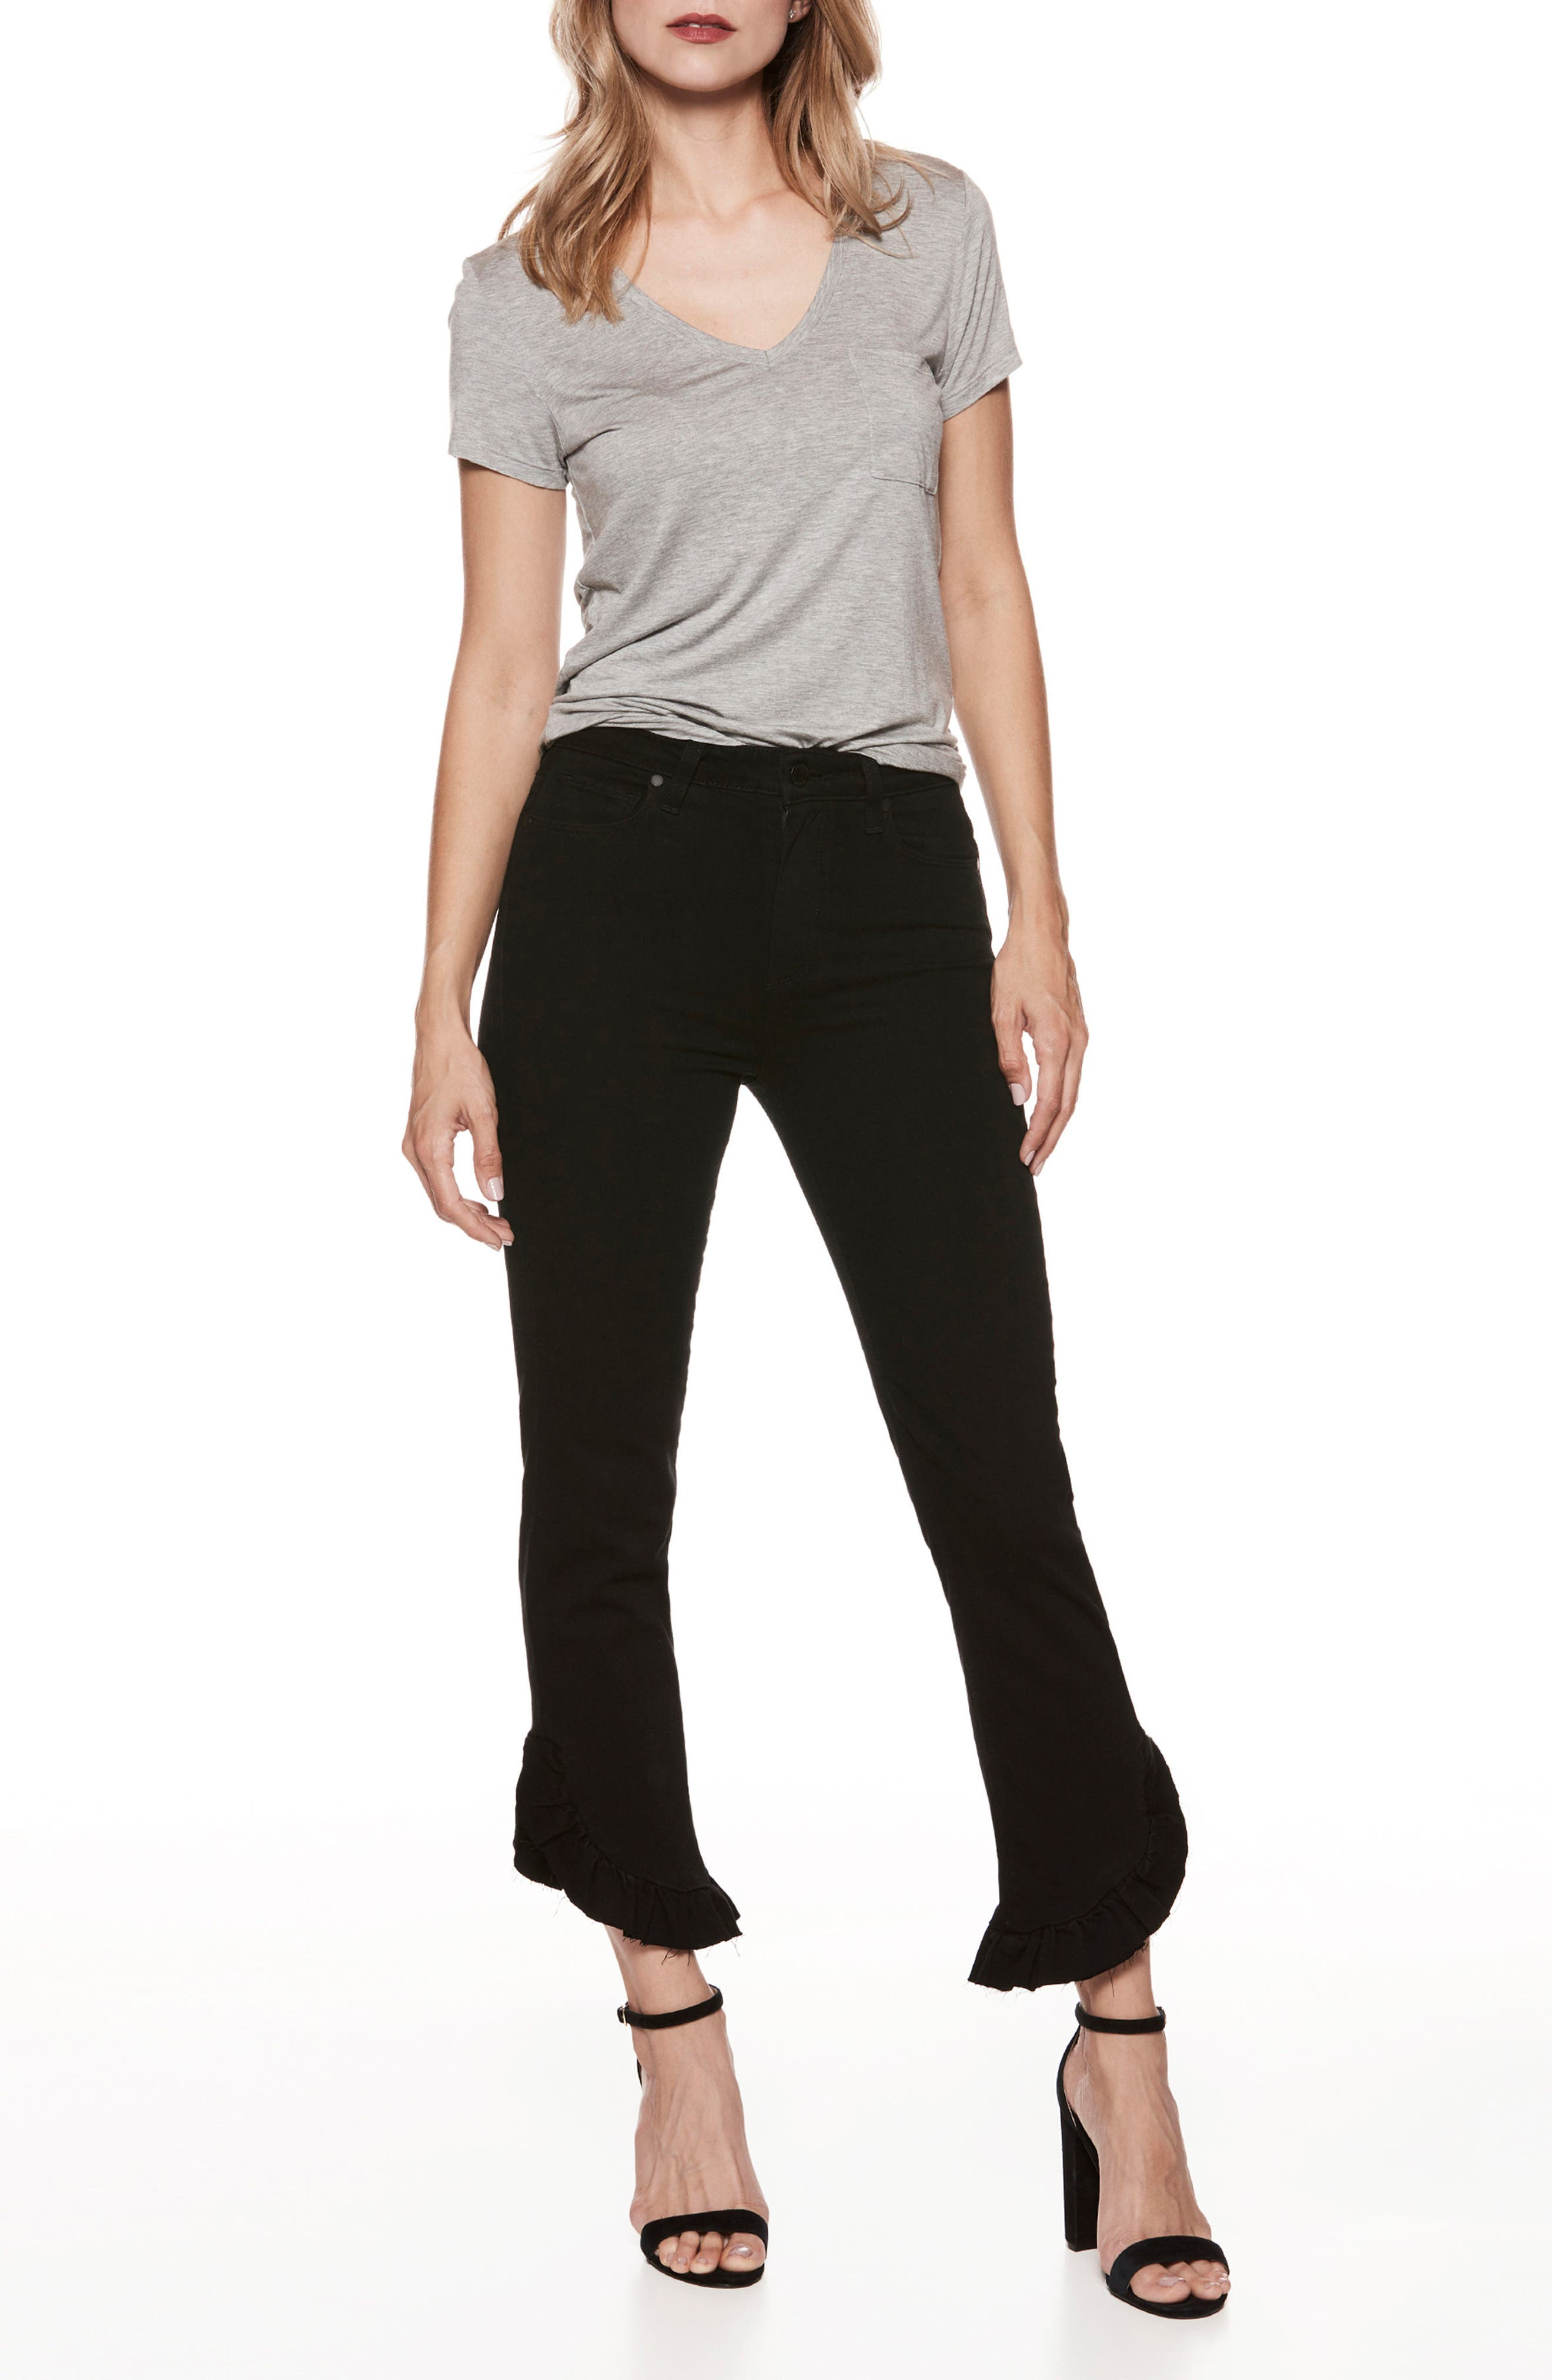 Transcend - Hoxton High Waist Ankle Straight Leg Jeans,                             Alternate thumbnail 4, color,                             Black Shadow